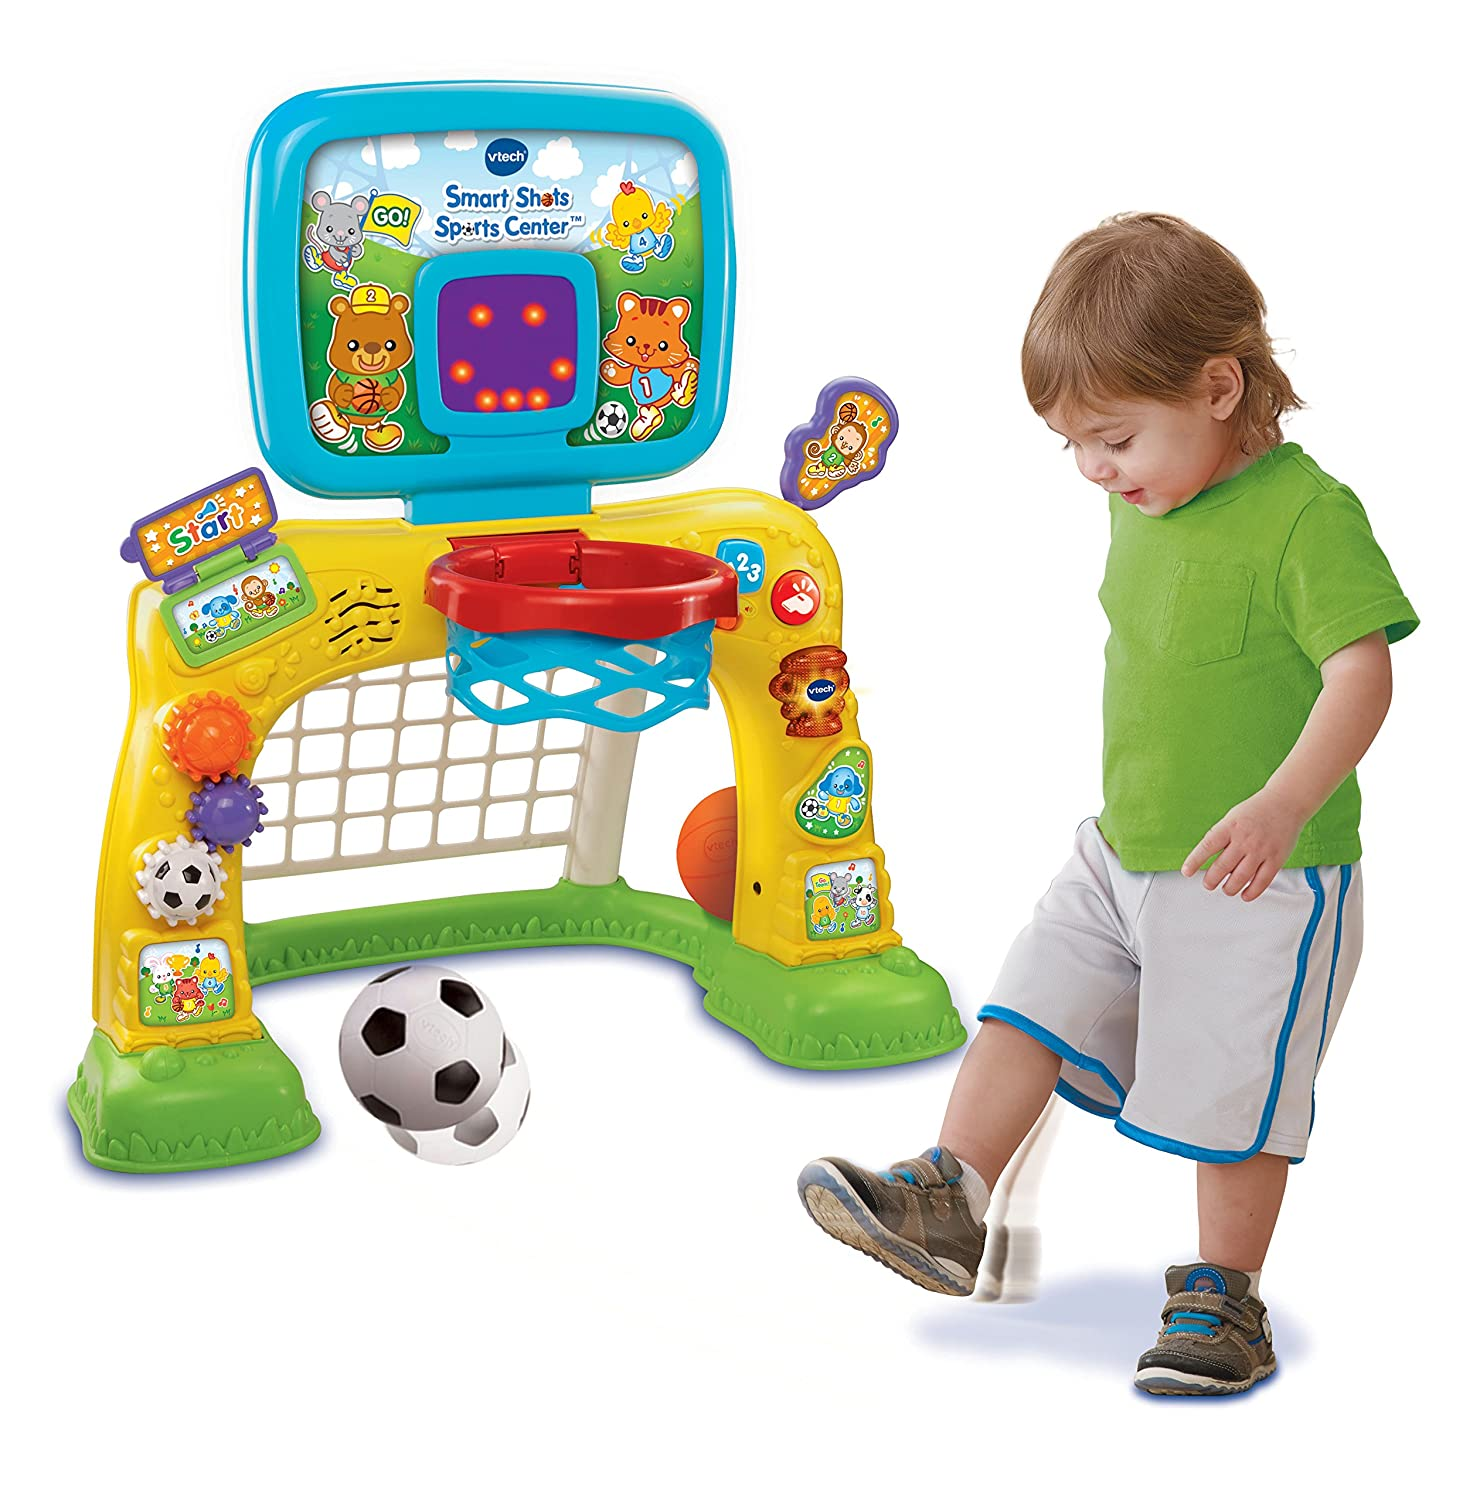 Amazon VTech Smart Shots Sports Center Toys & Games